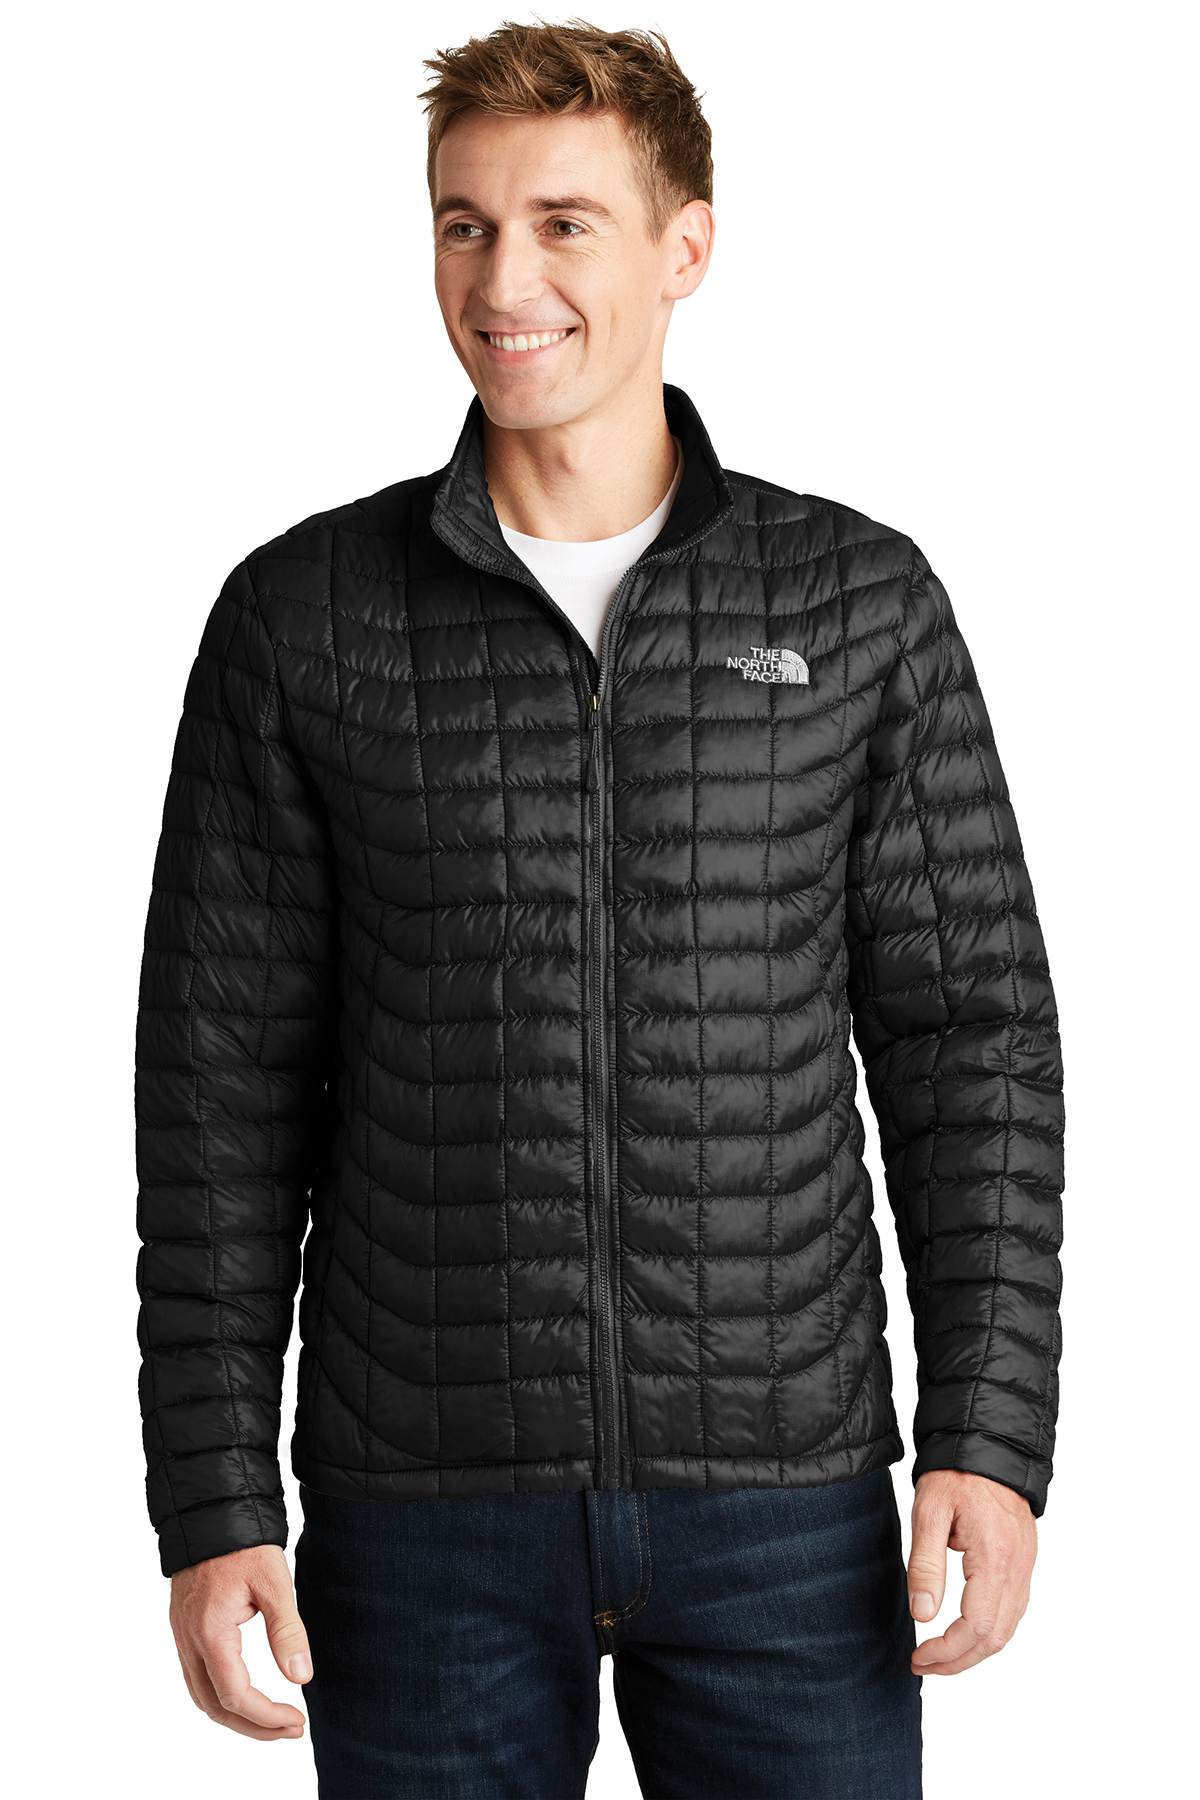 The North Face® NF0A3LH2 - Men's ThermoBall™ ...